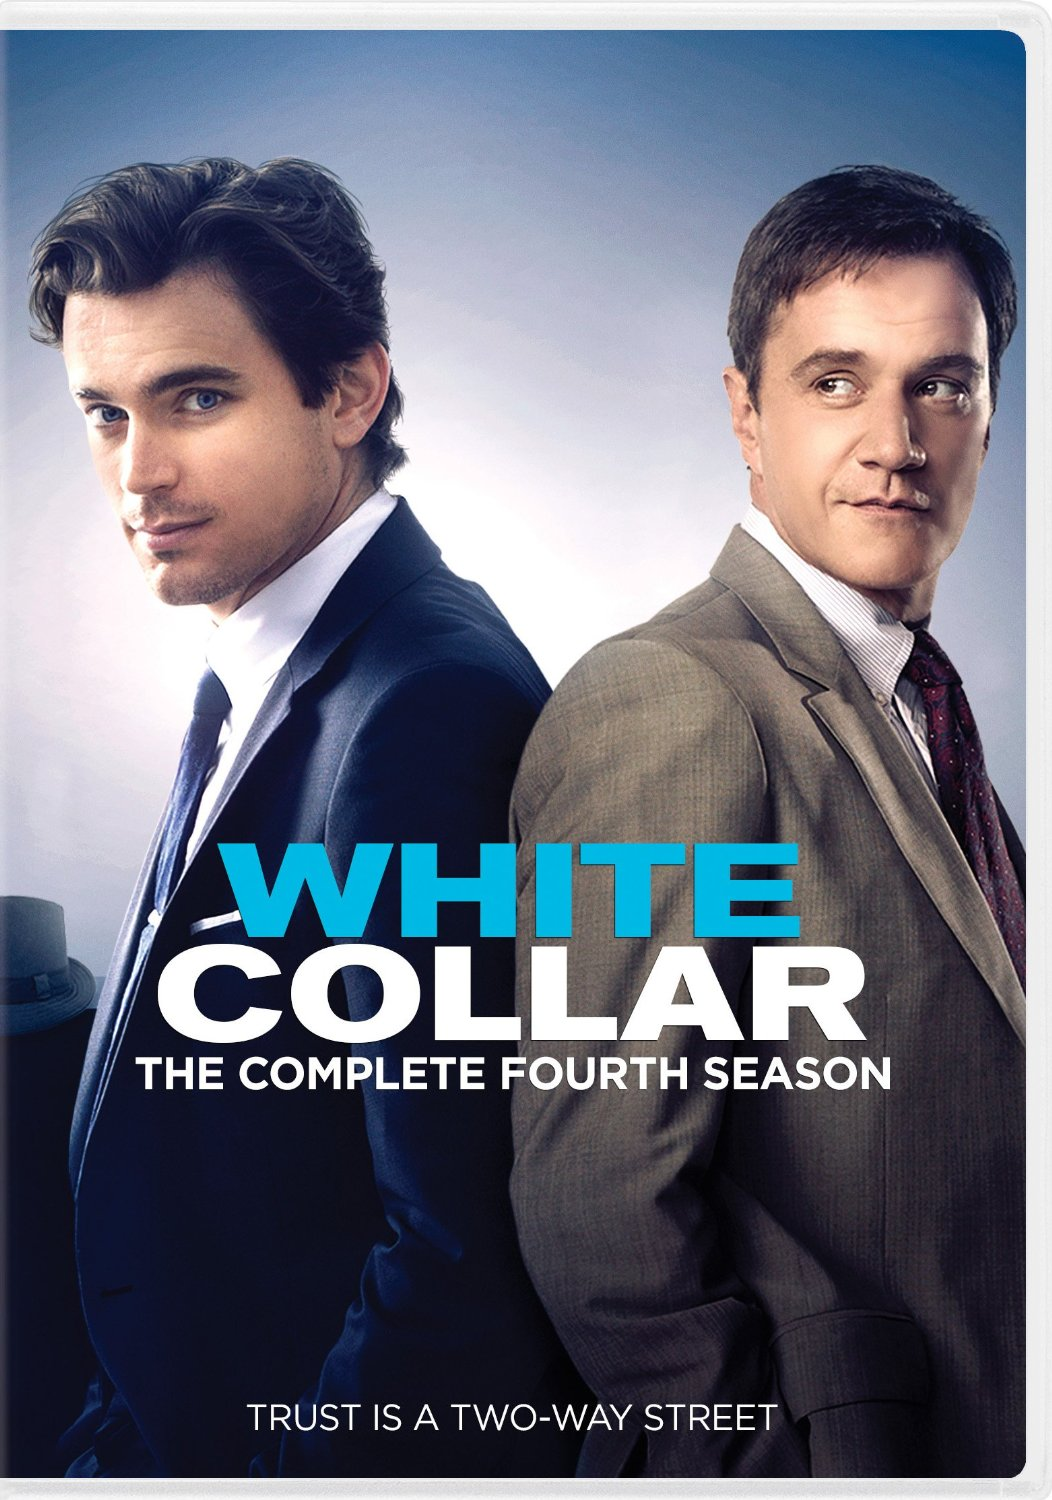 Movies - White Collar Season 4 Episode 3 Full Episode. Watch White Collar Season 4 Episode 3 Online for Free at Movies. Stream White Collar Season 4 Episode 3 Full Online Free in HD.